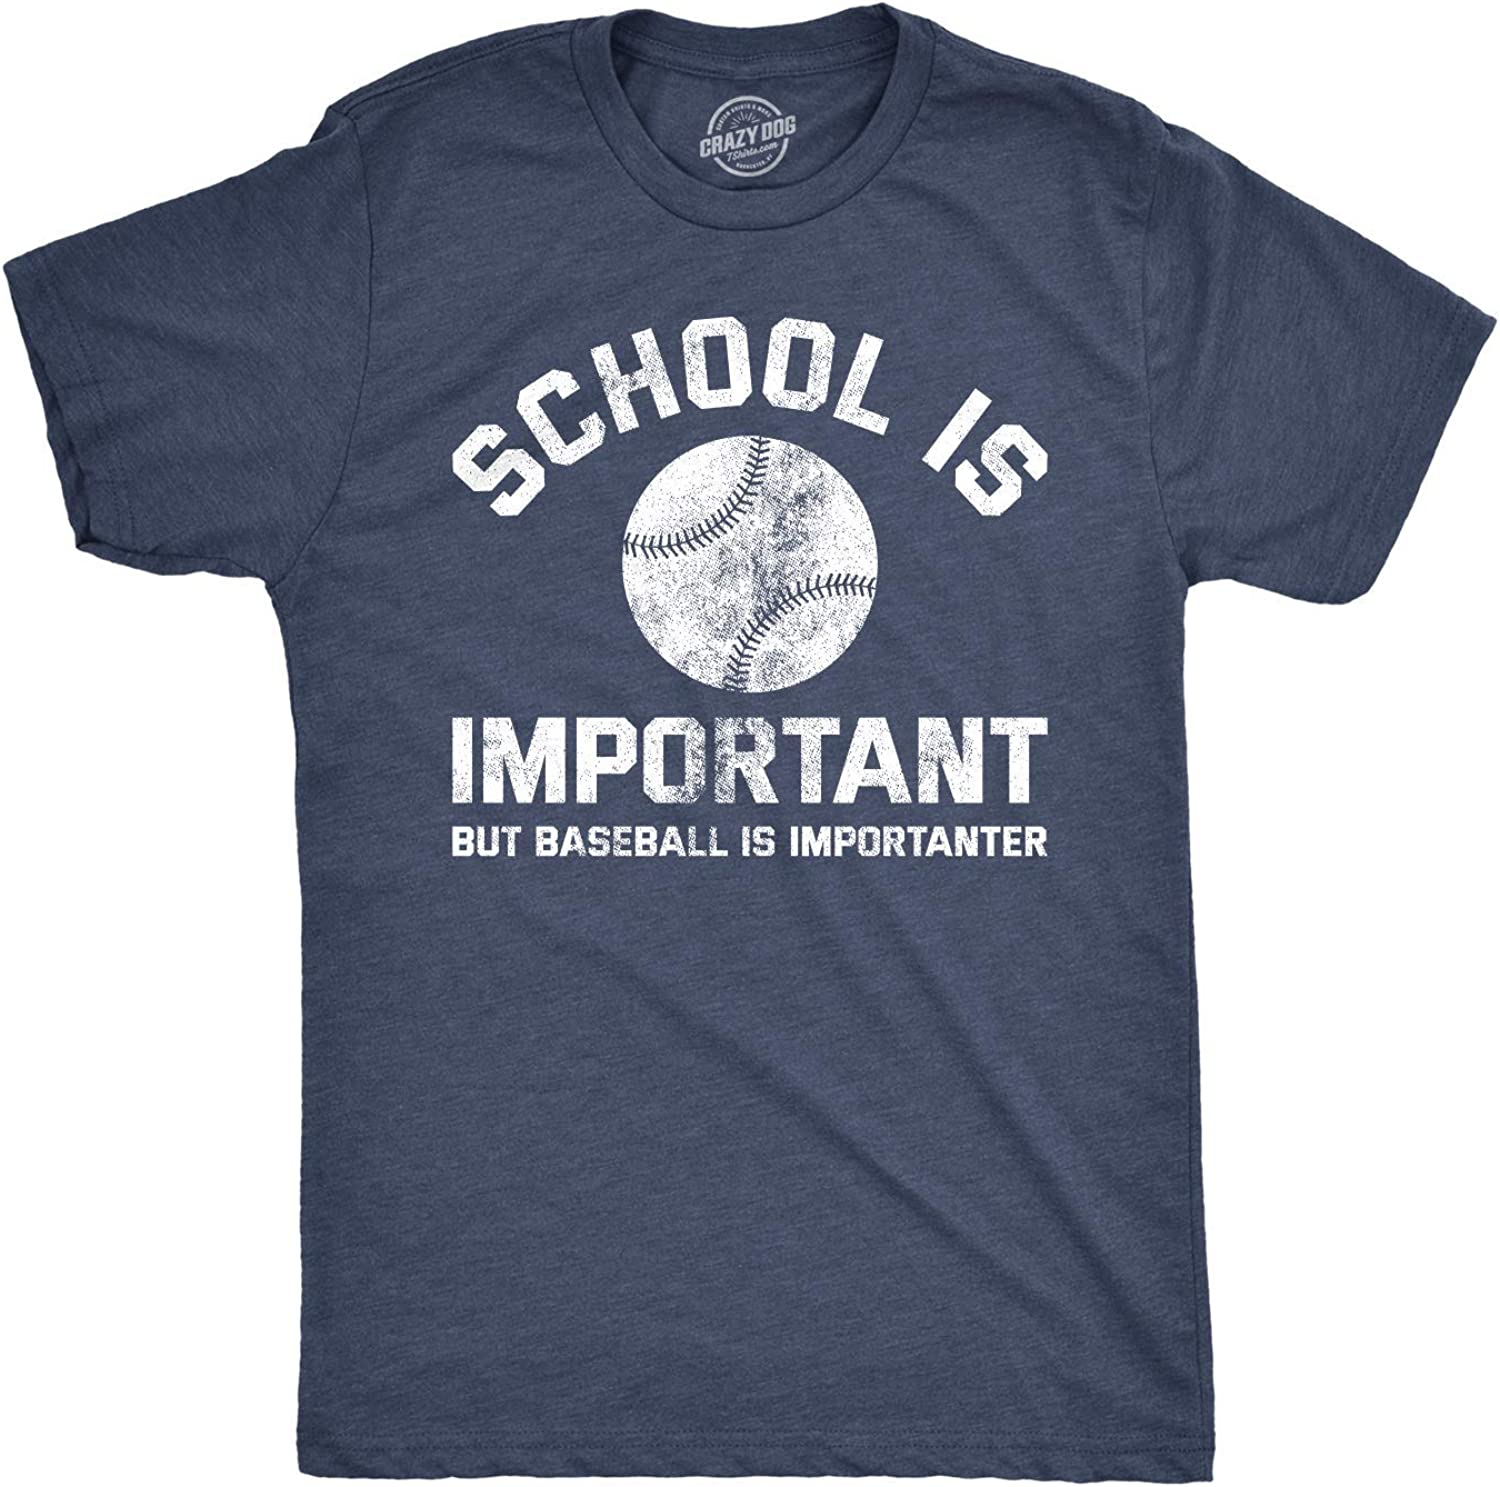 Crazy Dog T-Shirts Mens School is Important But Baseball is Importanter Tshirt Funny Sports Tee